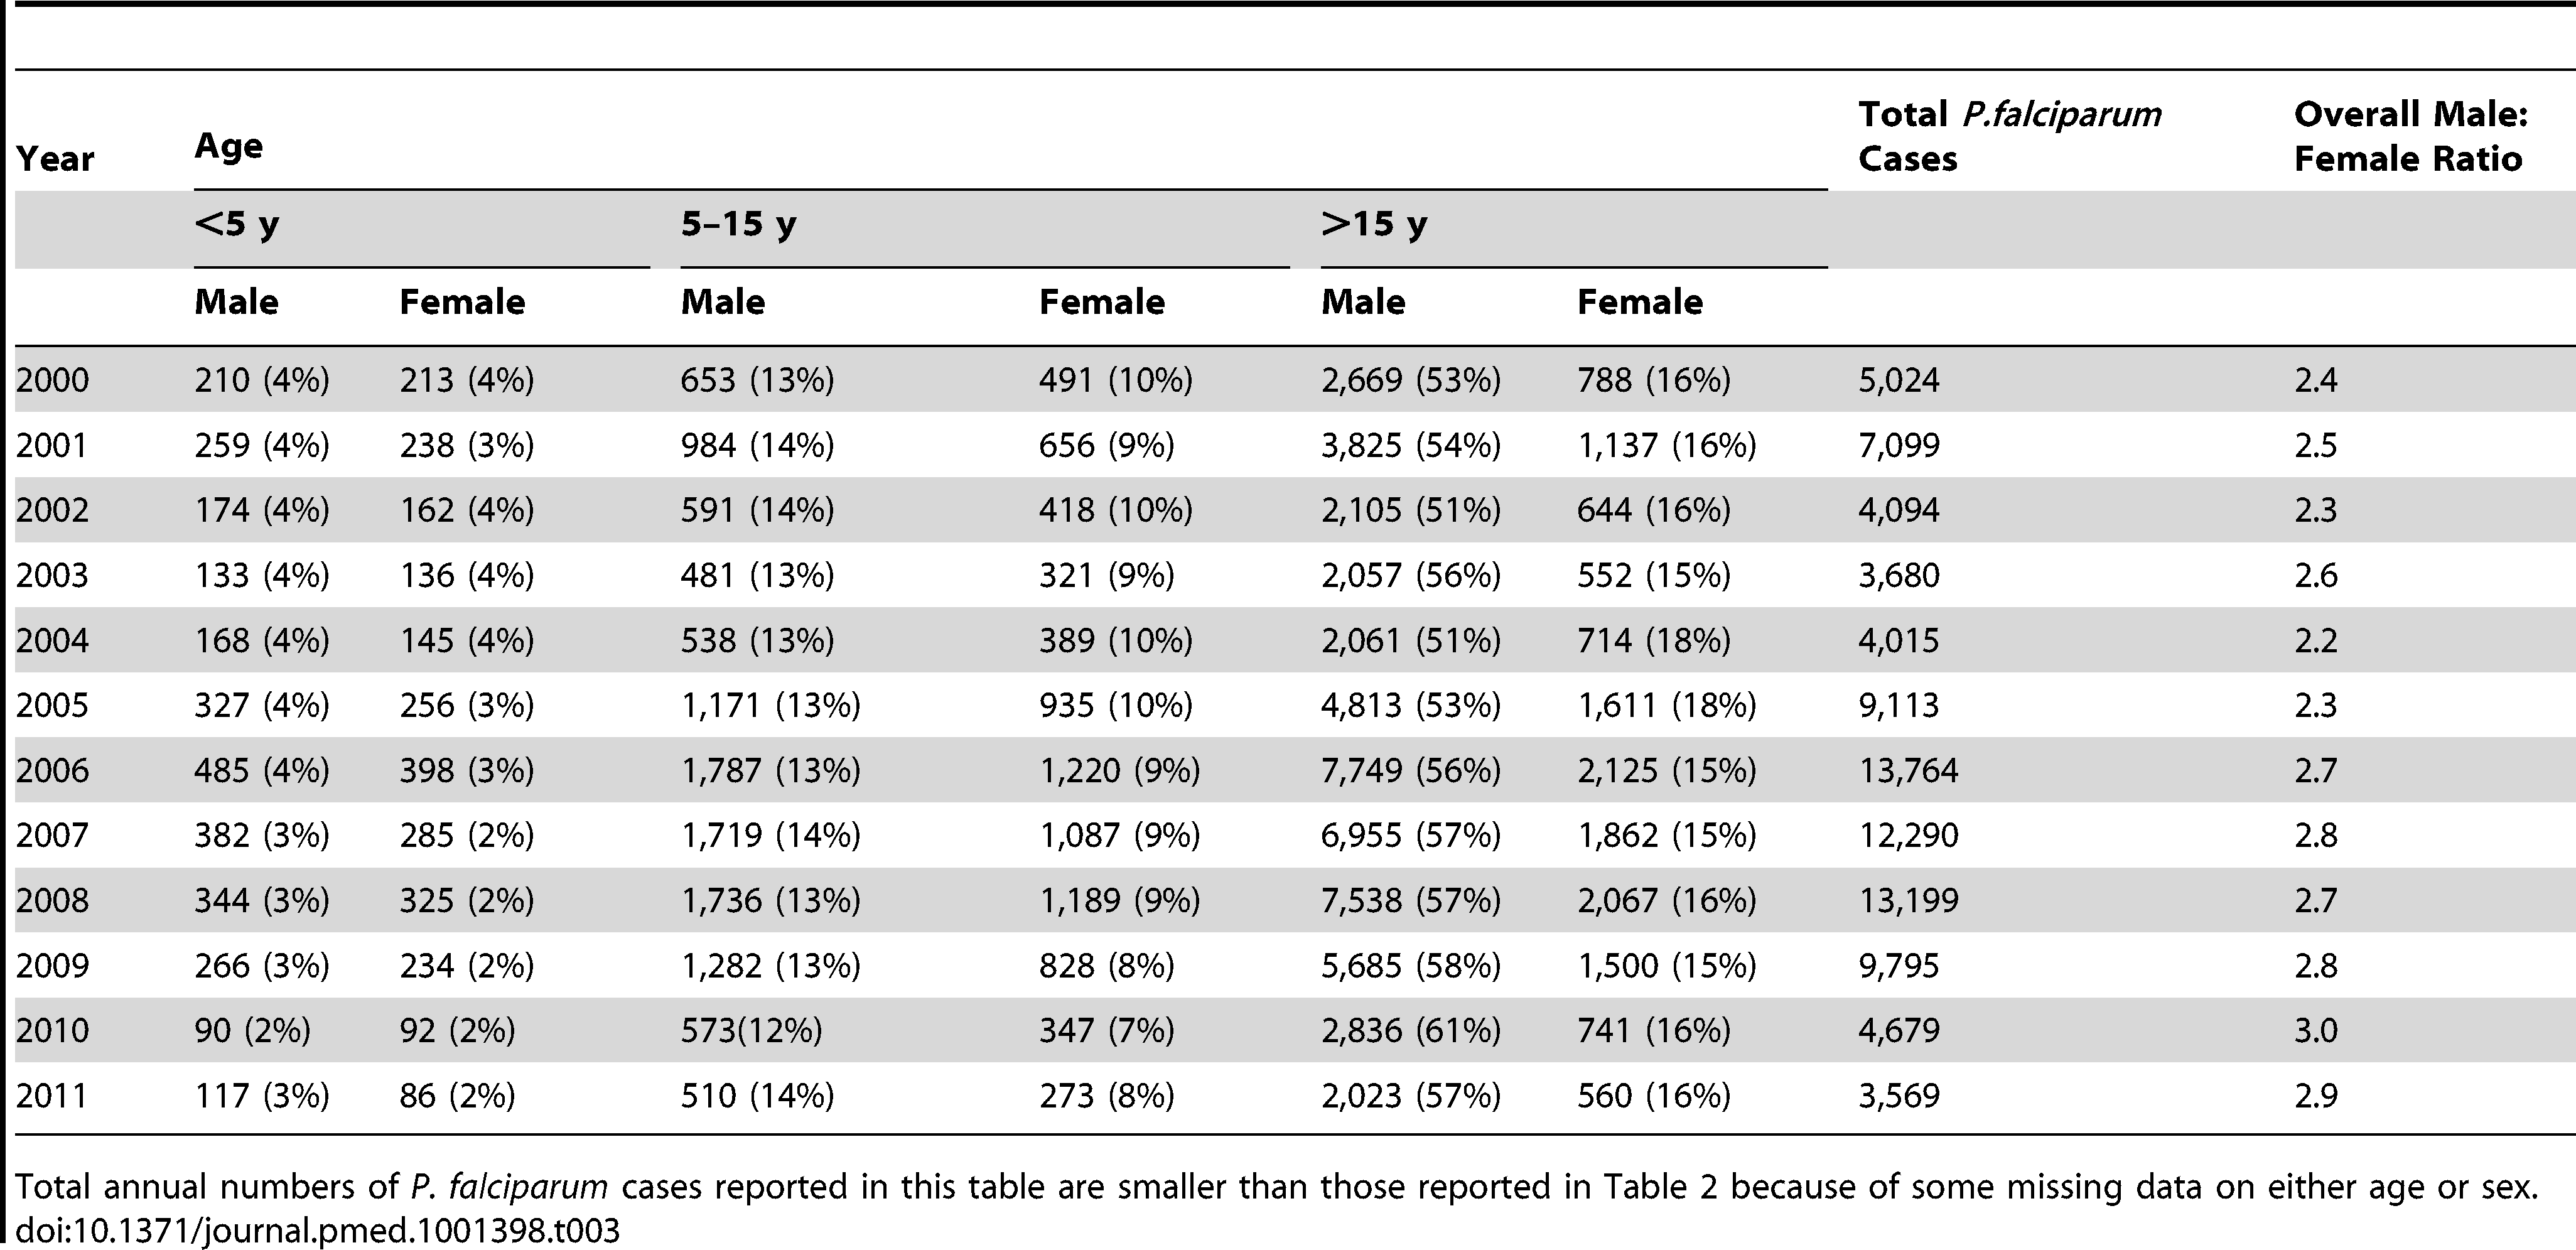 Total <i>P. falciparum</i> malaria cases confirmed and treated in SMRU clinics by sex and age group (and as percentage of total annual number of <i>P. falciparum</i> cases).